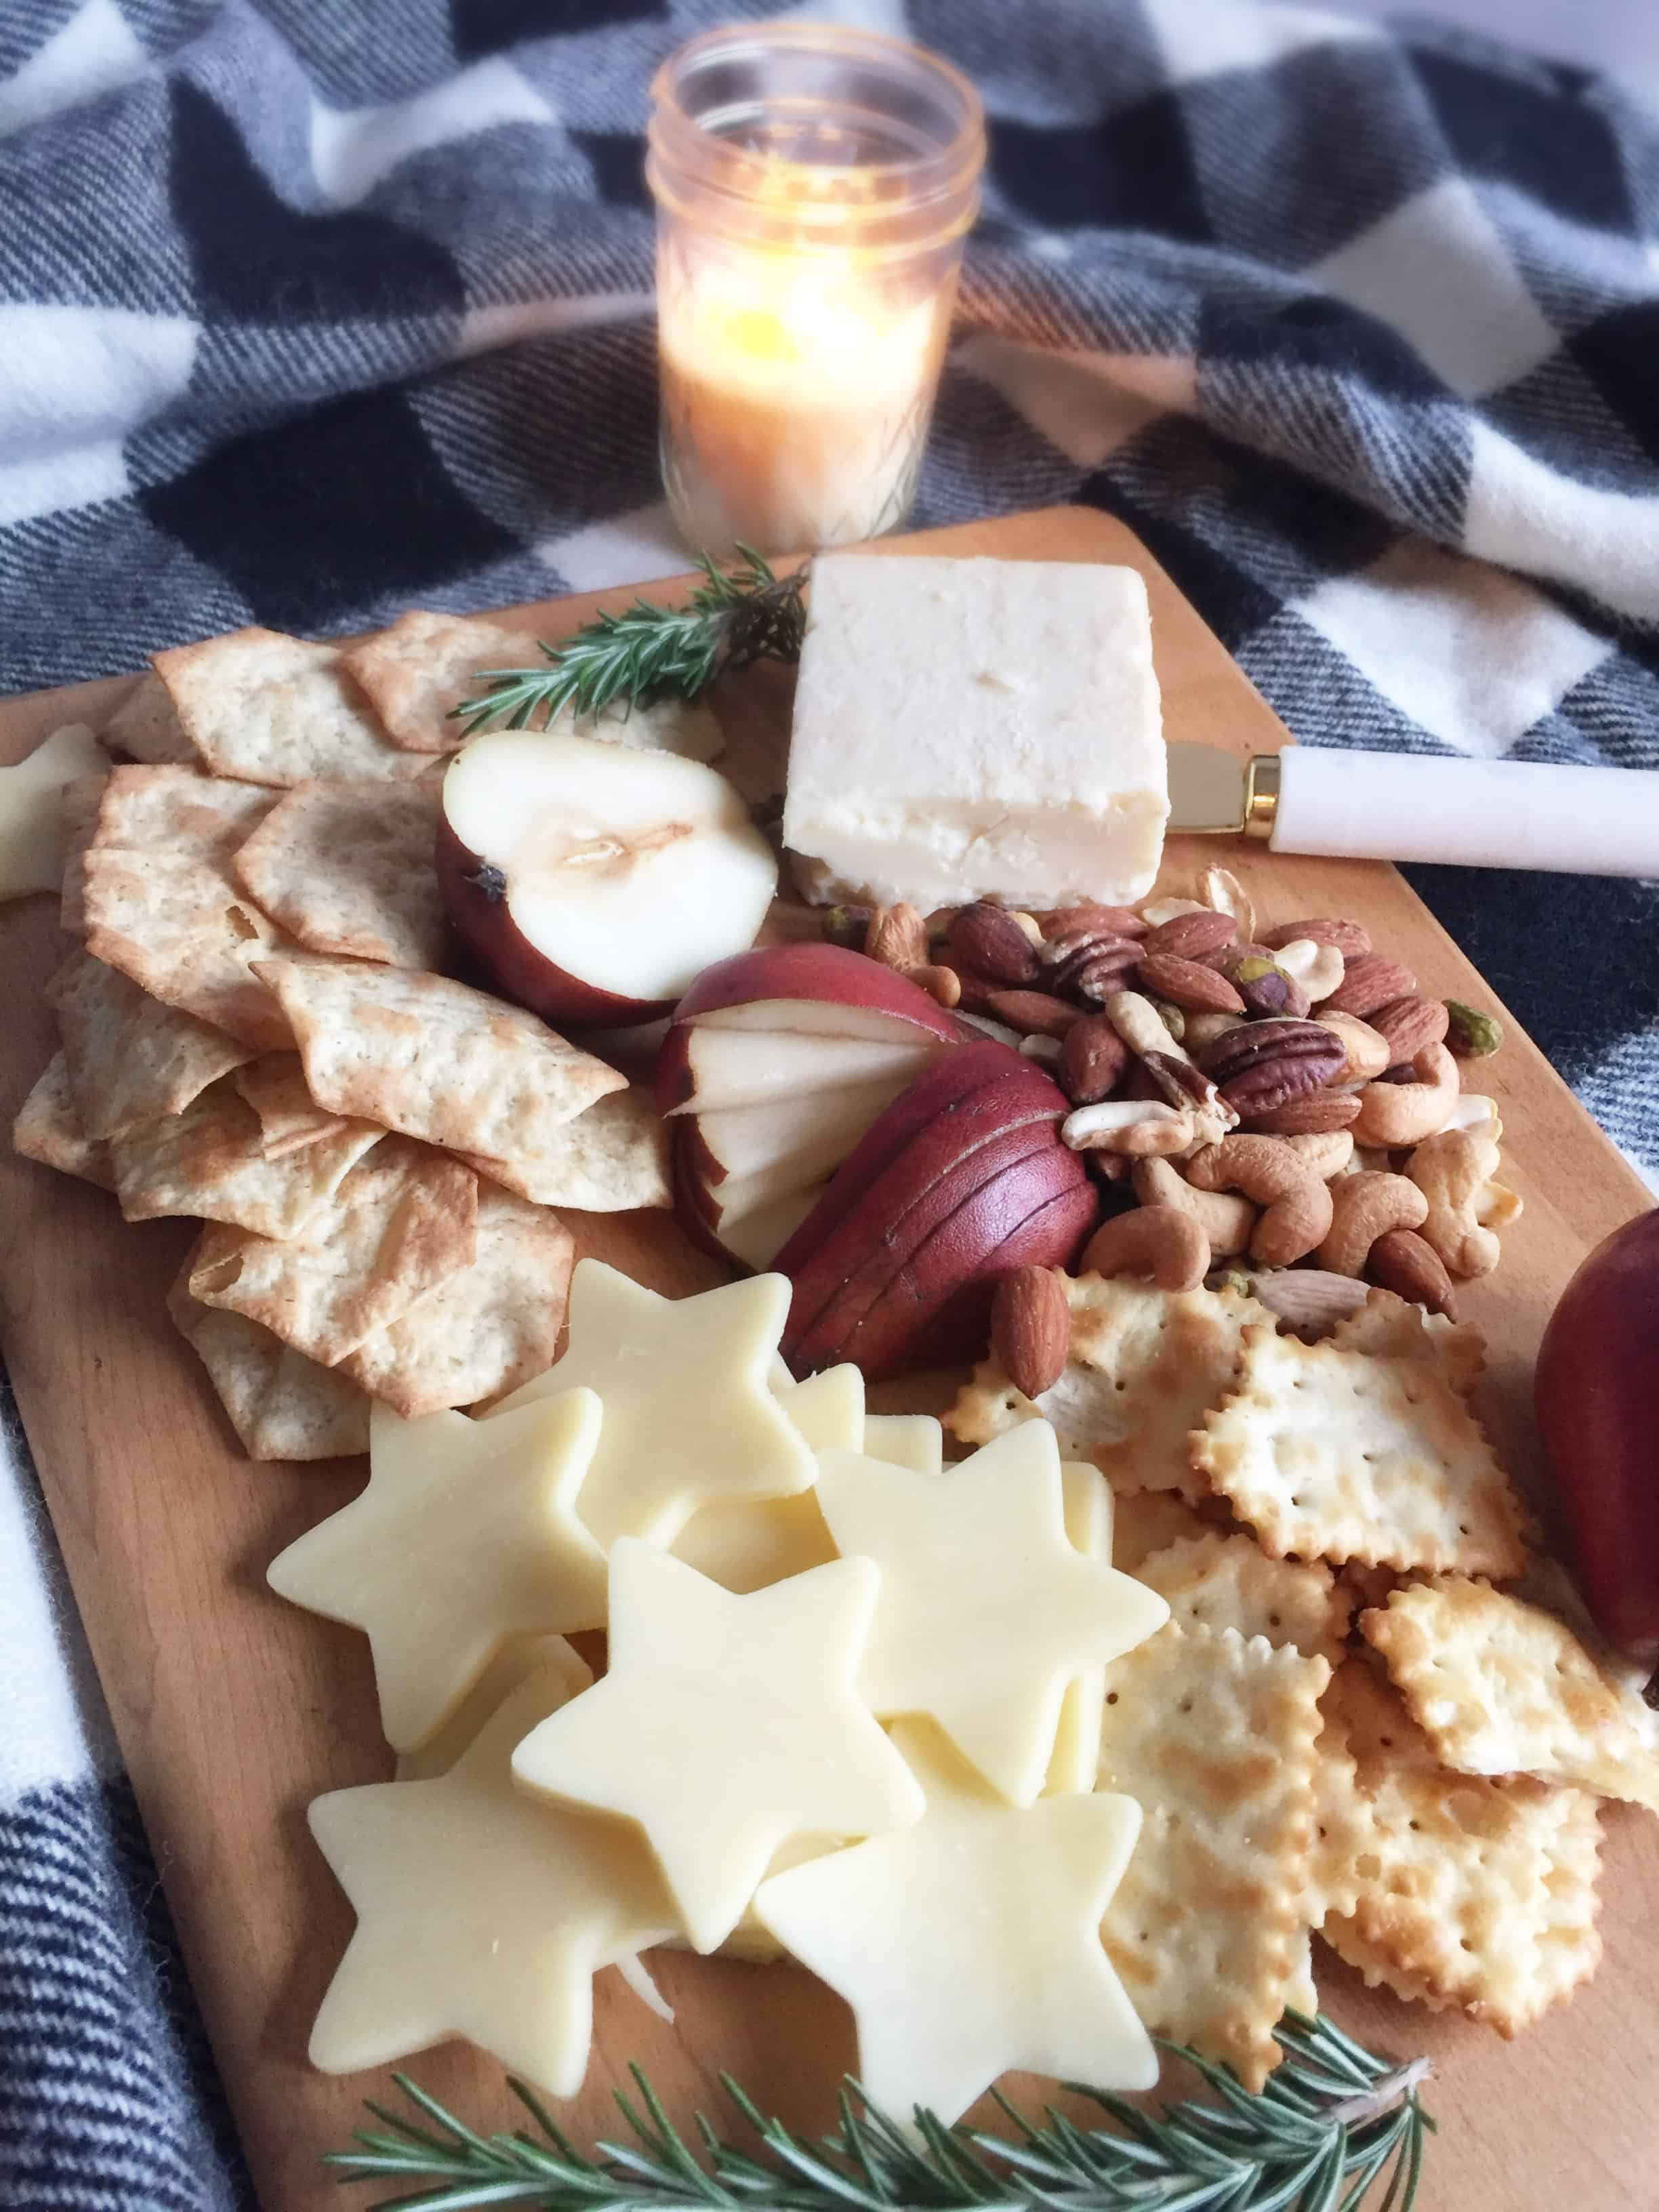 Steps to making a cozy winter charcuterie board.